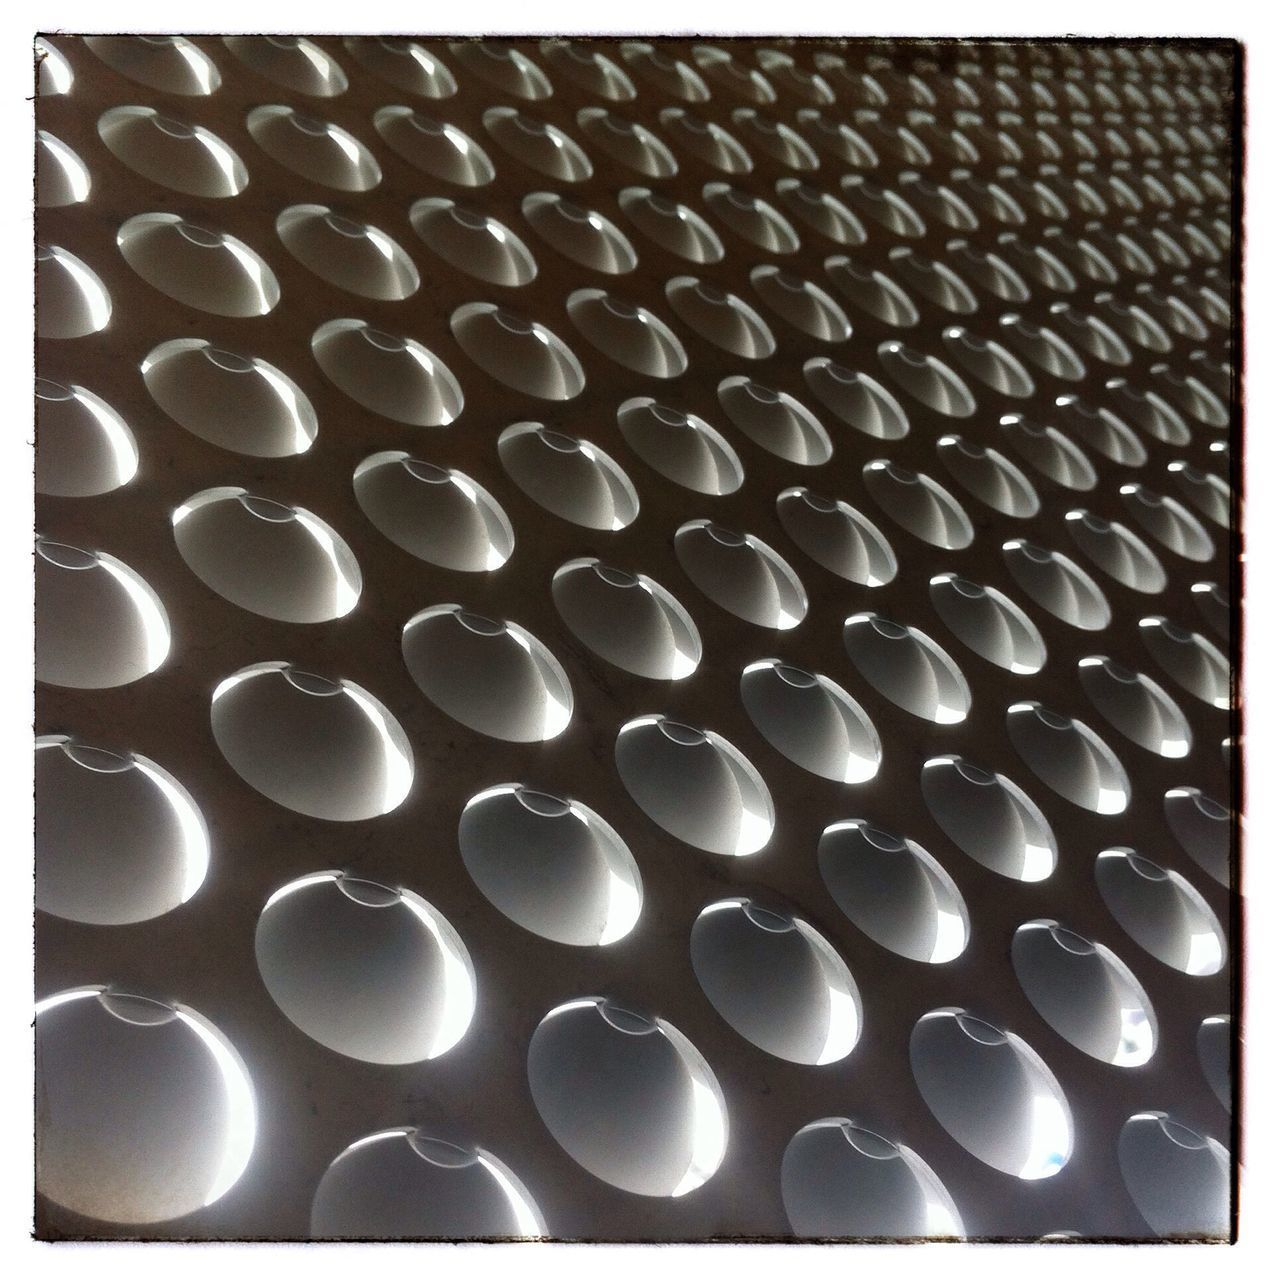 Metal bubbles. #abstract #photography #photooftheday #iphone #lightandshadow